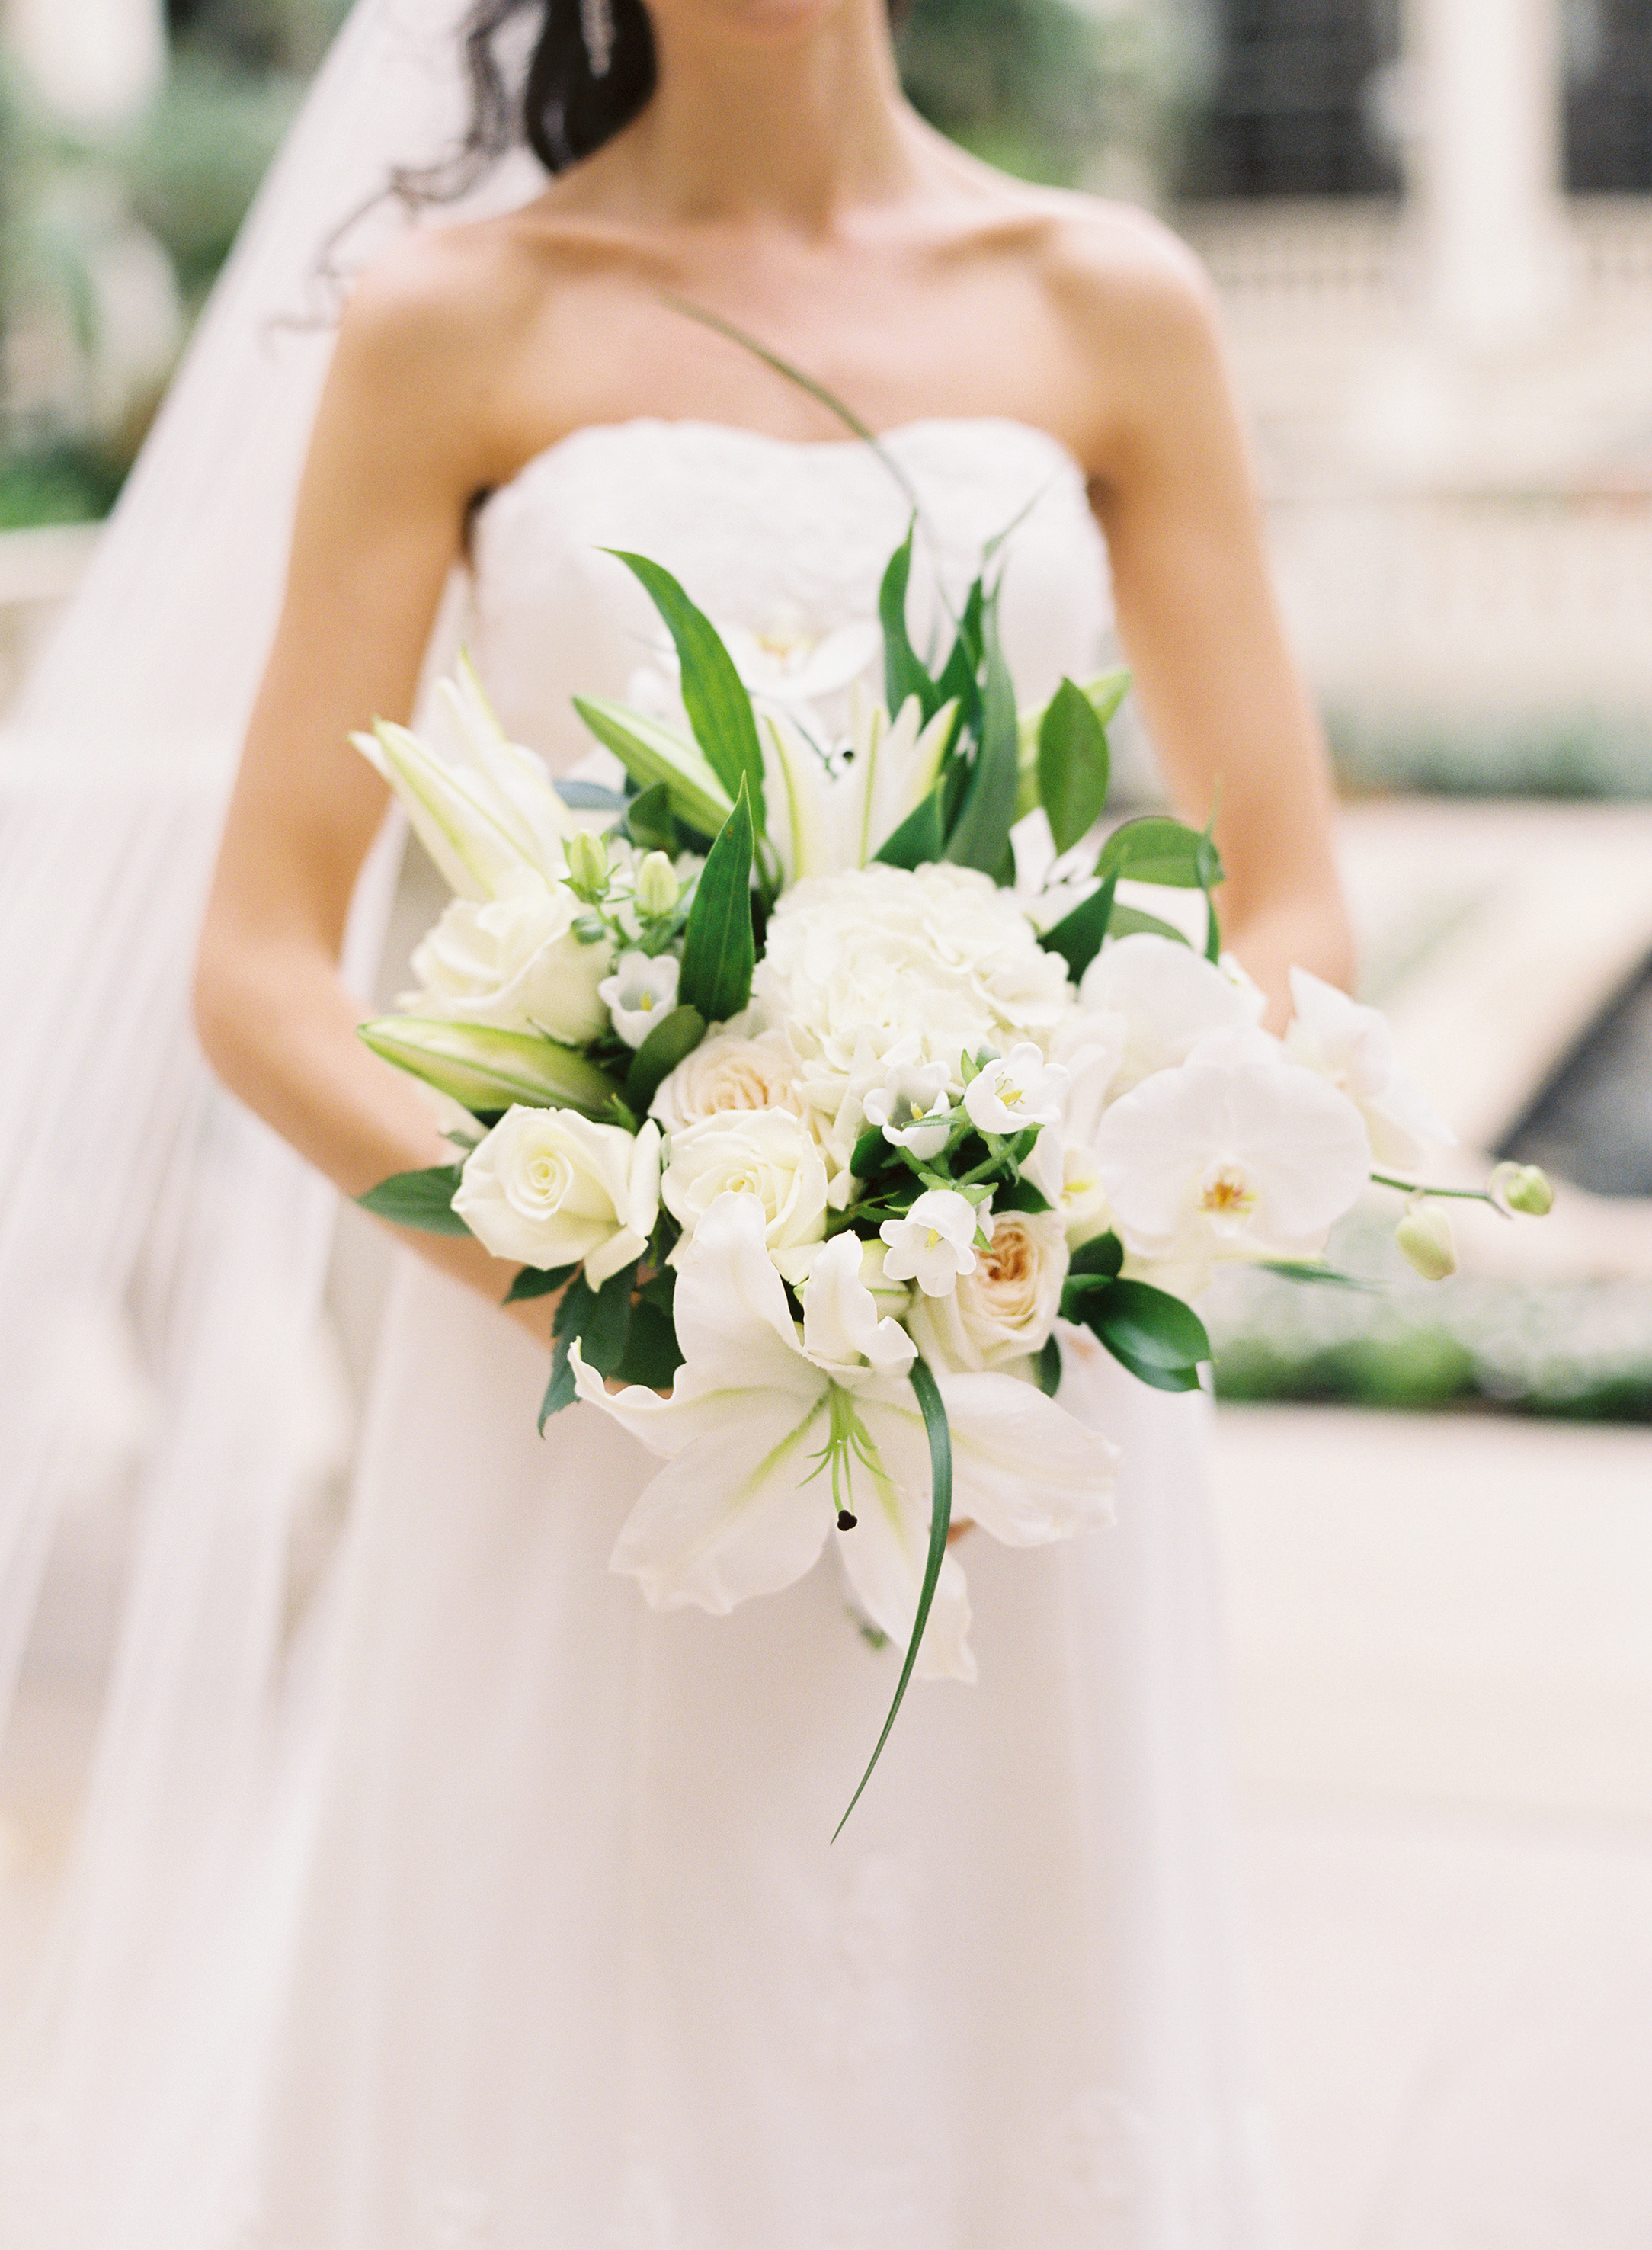 Flowers & Decor, Real Weddings, Wedding Style, white, Bride Bouquets, Classic, Classic Weddings, Classic Wedding Flowers & Decor, Roses, Elegant, Florida, Lillies, Bridal Bouquets